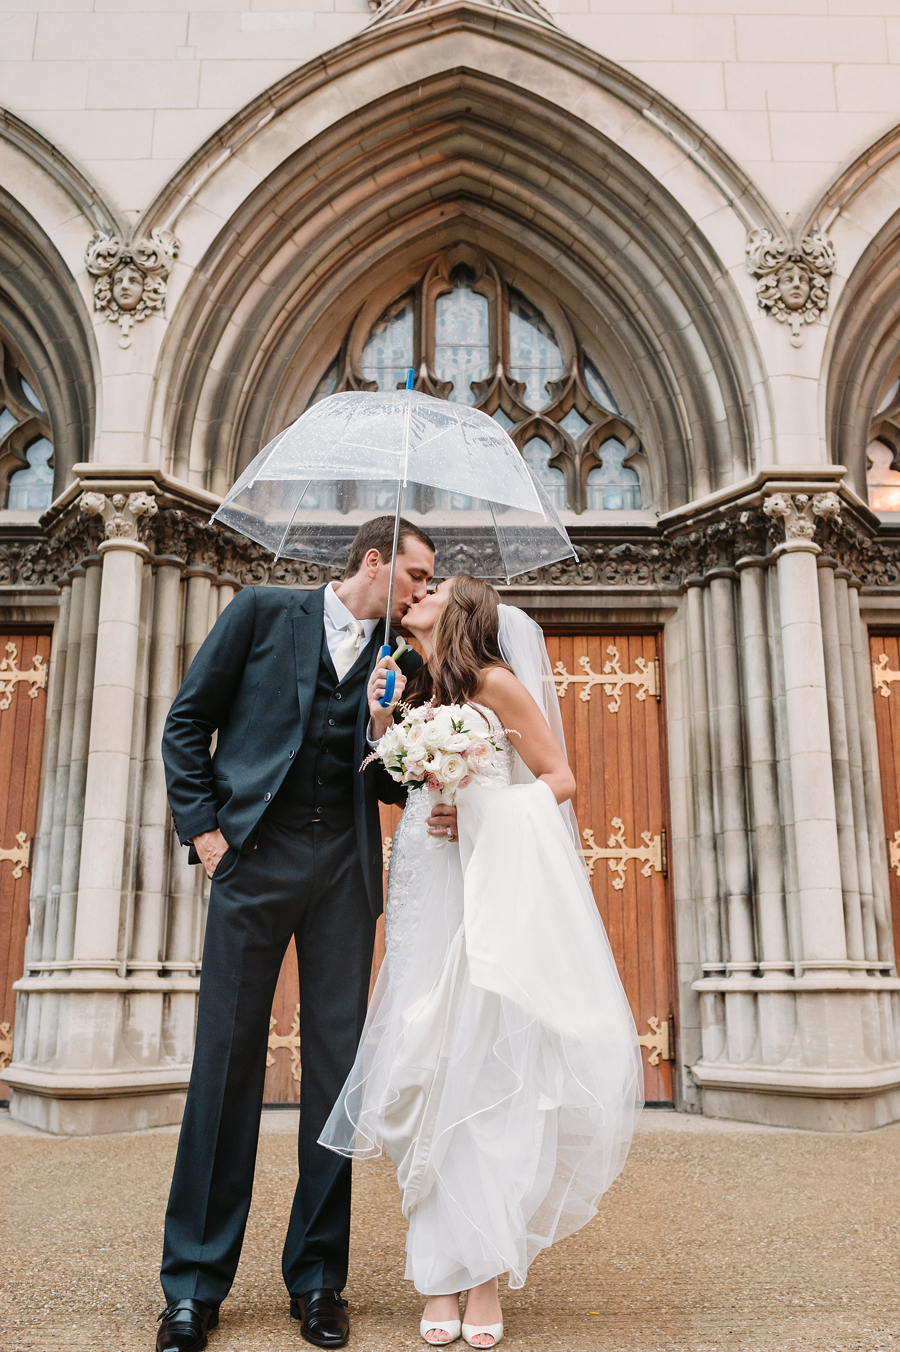 Rainy Chicago Wedding with Reception at McDonald's Corporation by Two Birds Photography16